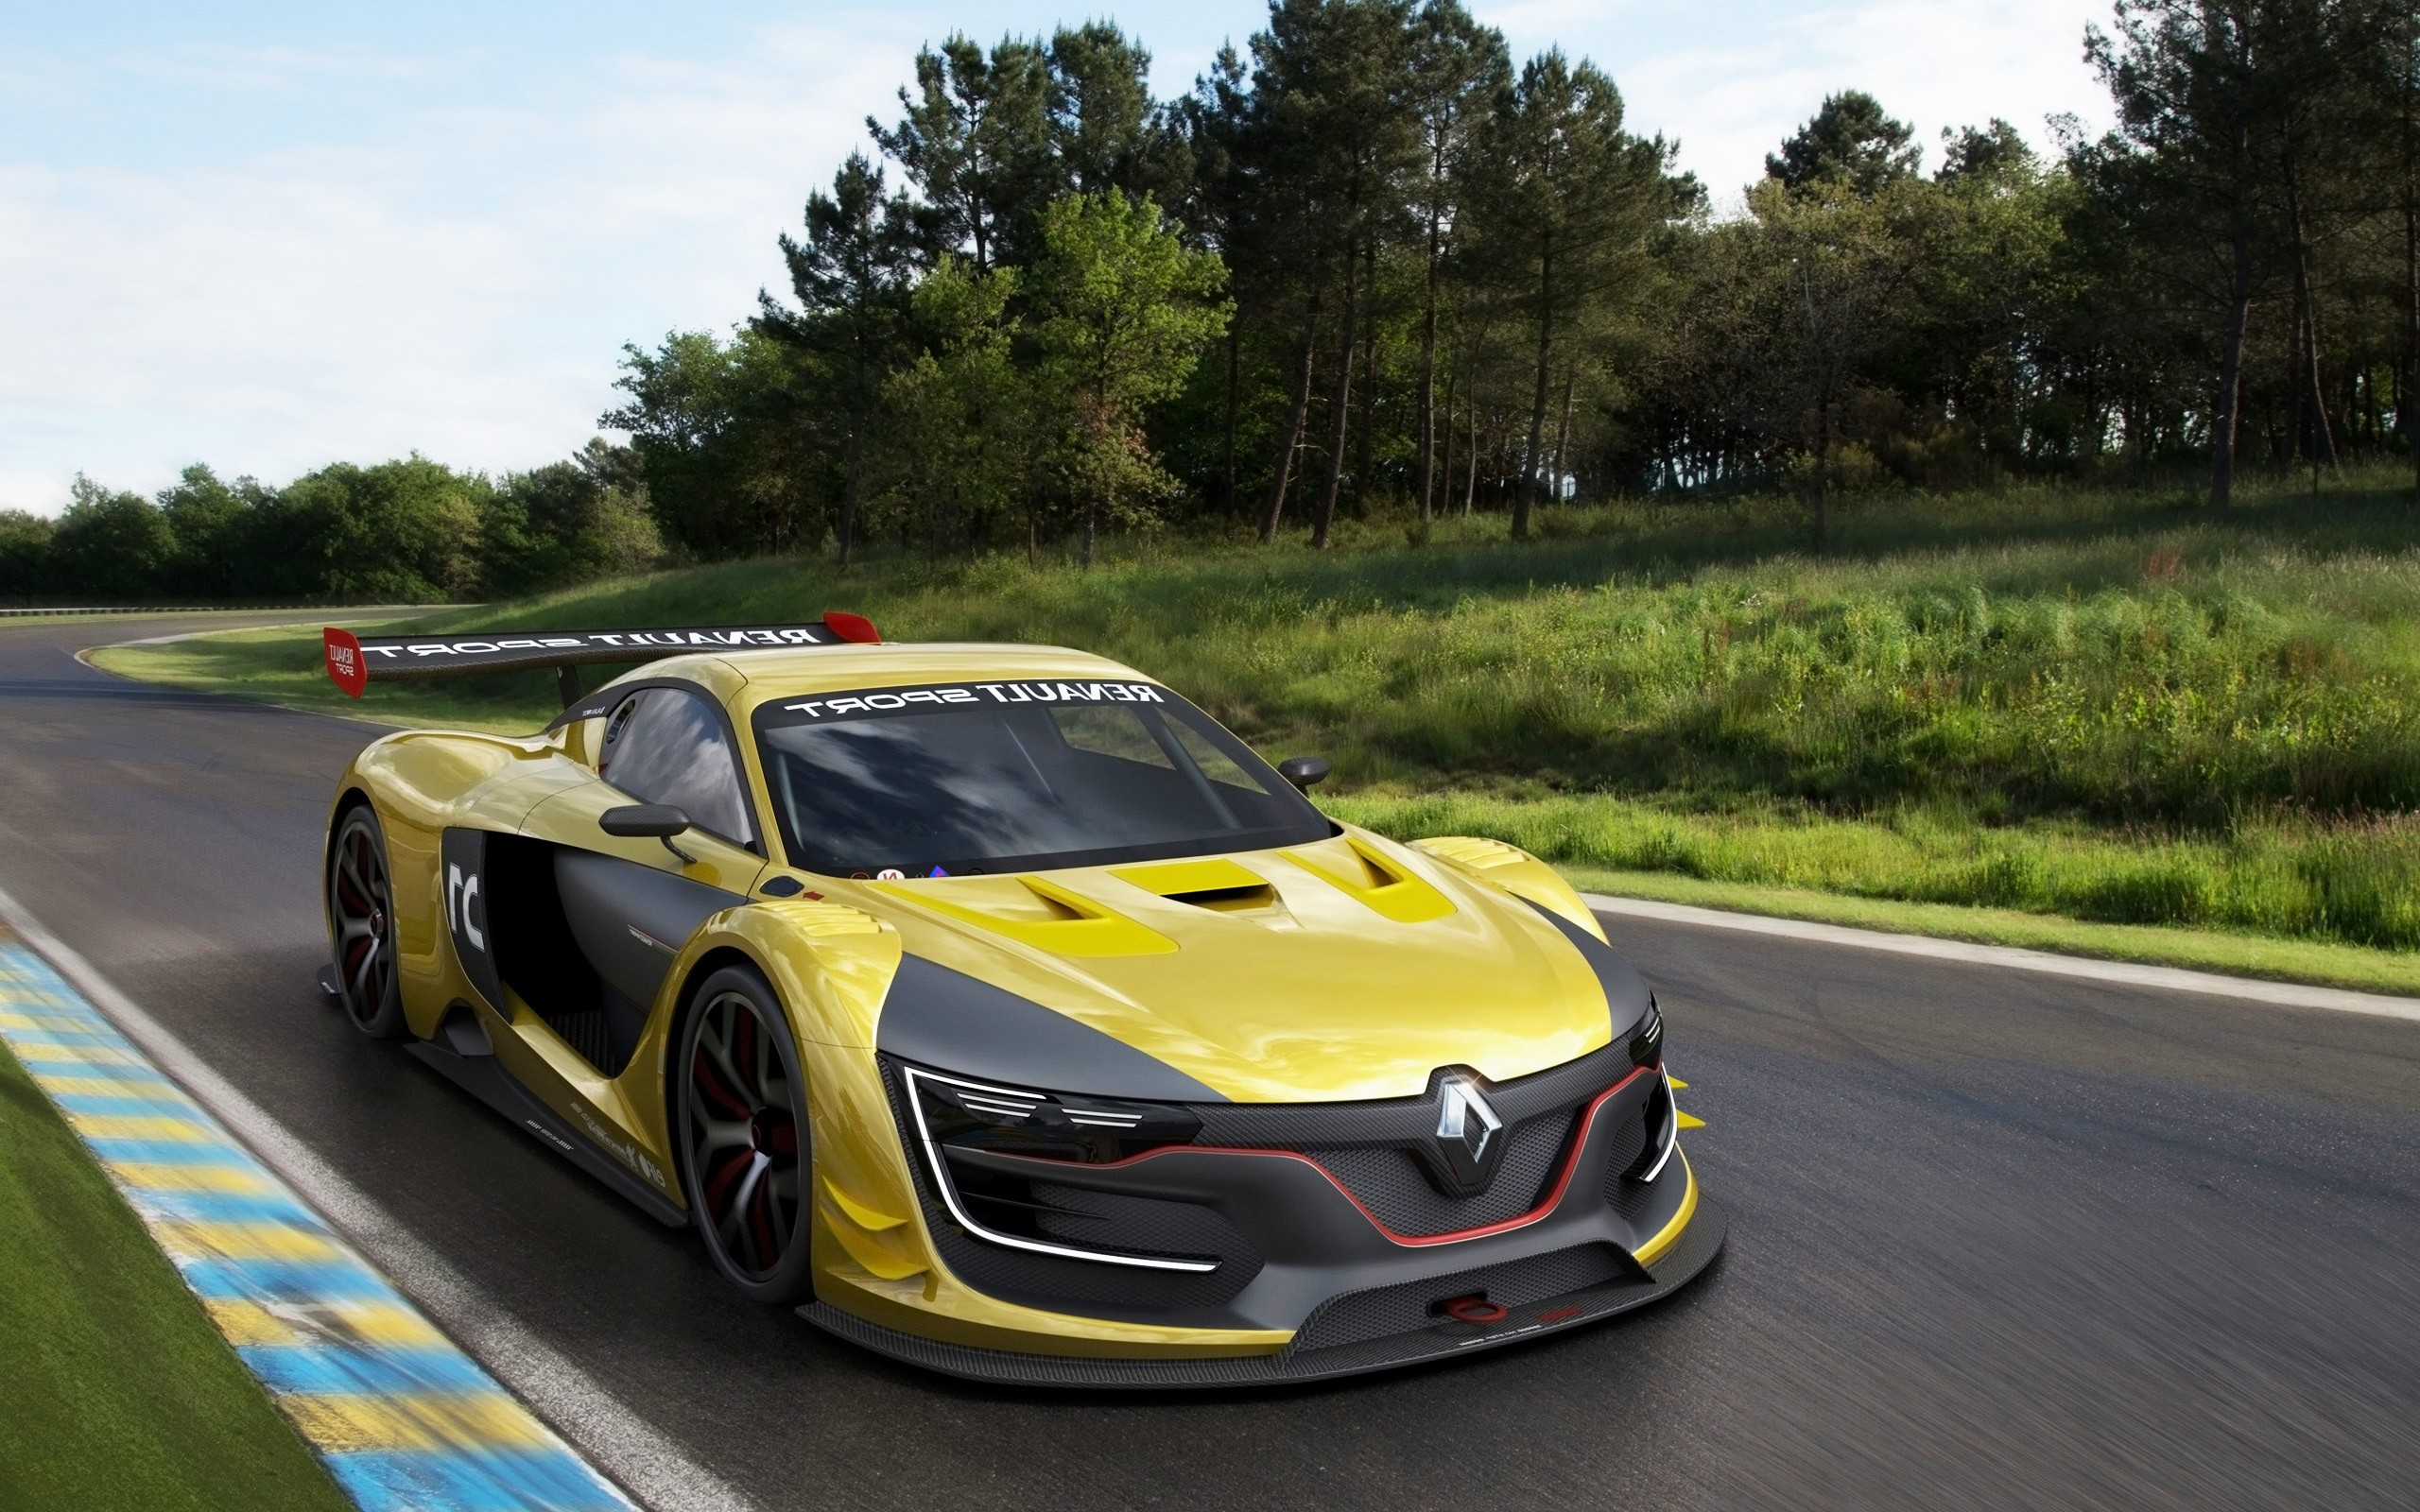 Renault Sport Wallpaper Iphone: Renault Sports RS 01, HD Cars, 4k Wallpapers, Images